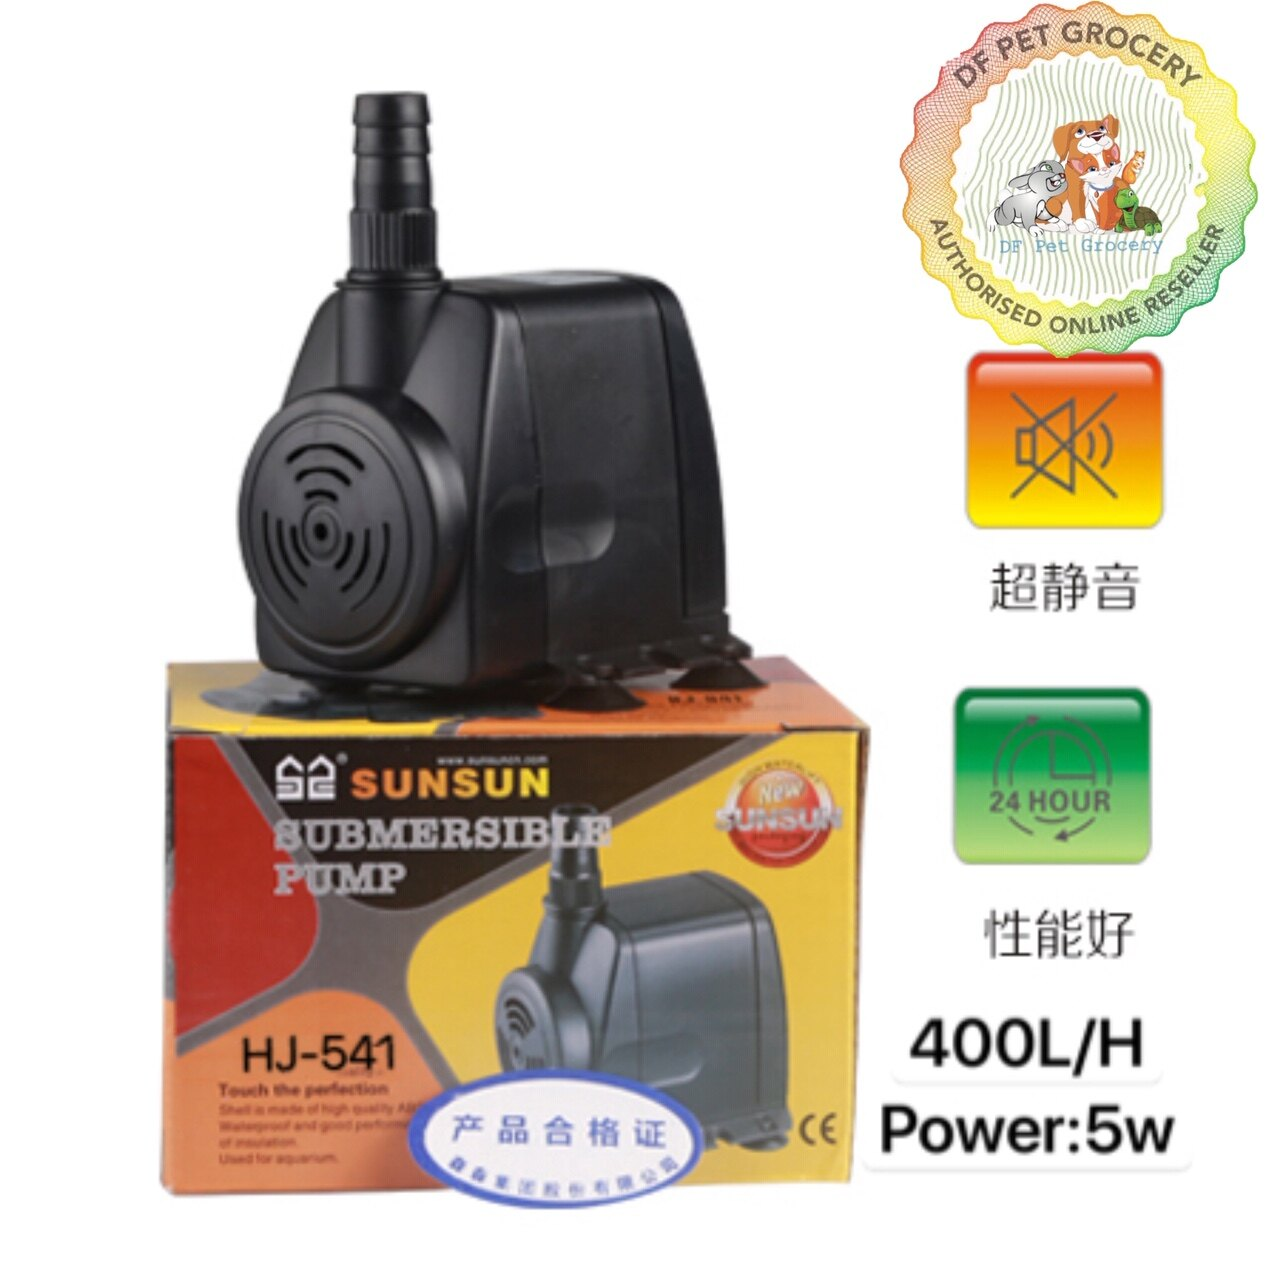 SunSun Submersible Water Pump HJ-541 Water Pump 400L/H